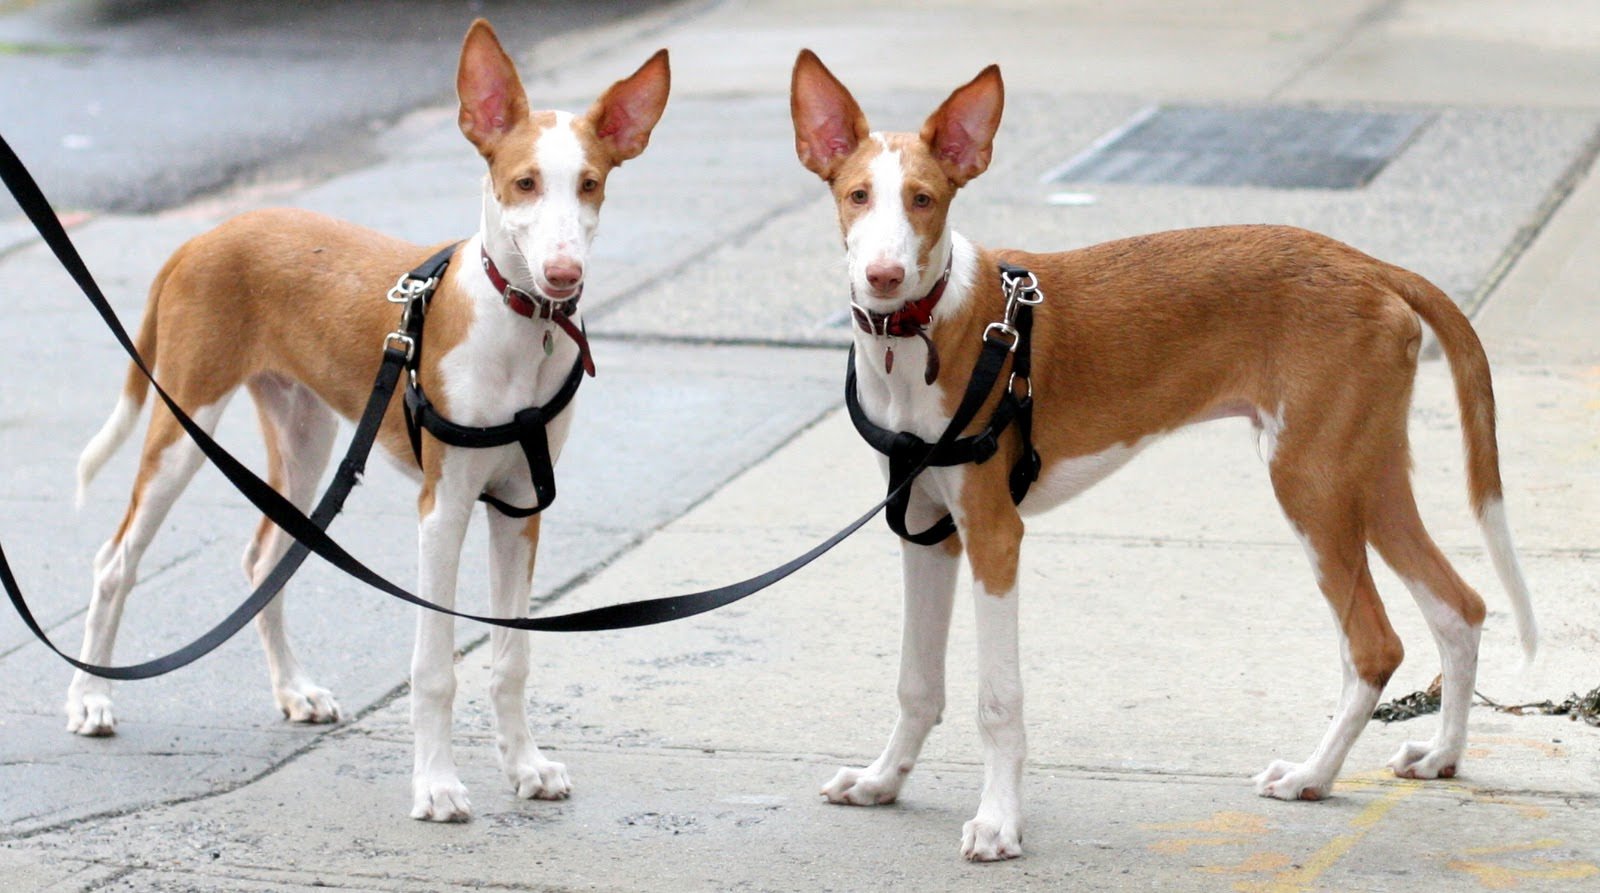 Ibizan Hound Info, Temperament, Training, Diet, Puppies, Pictures